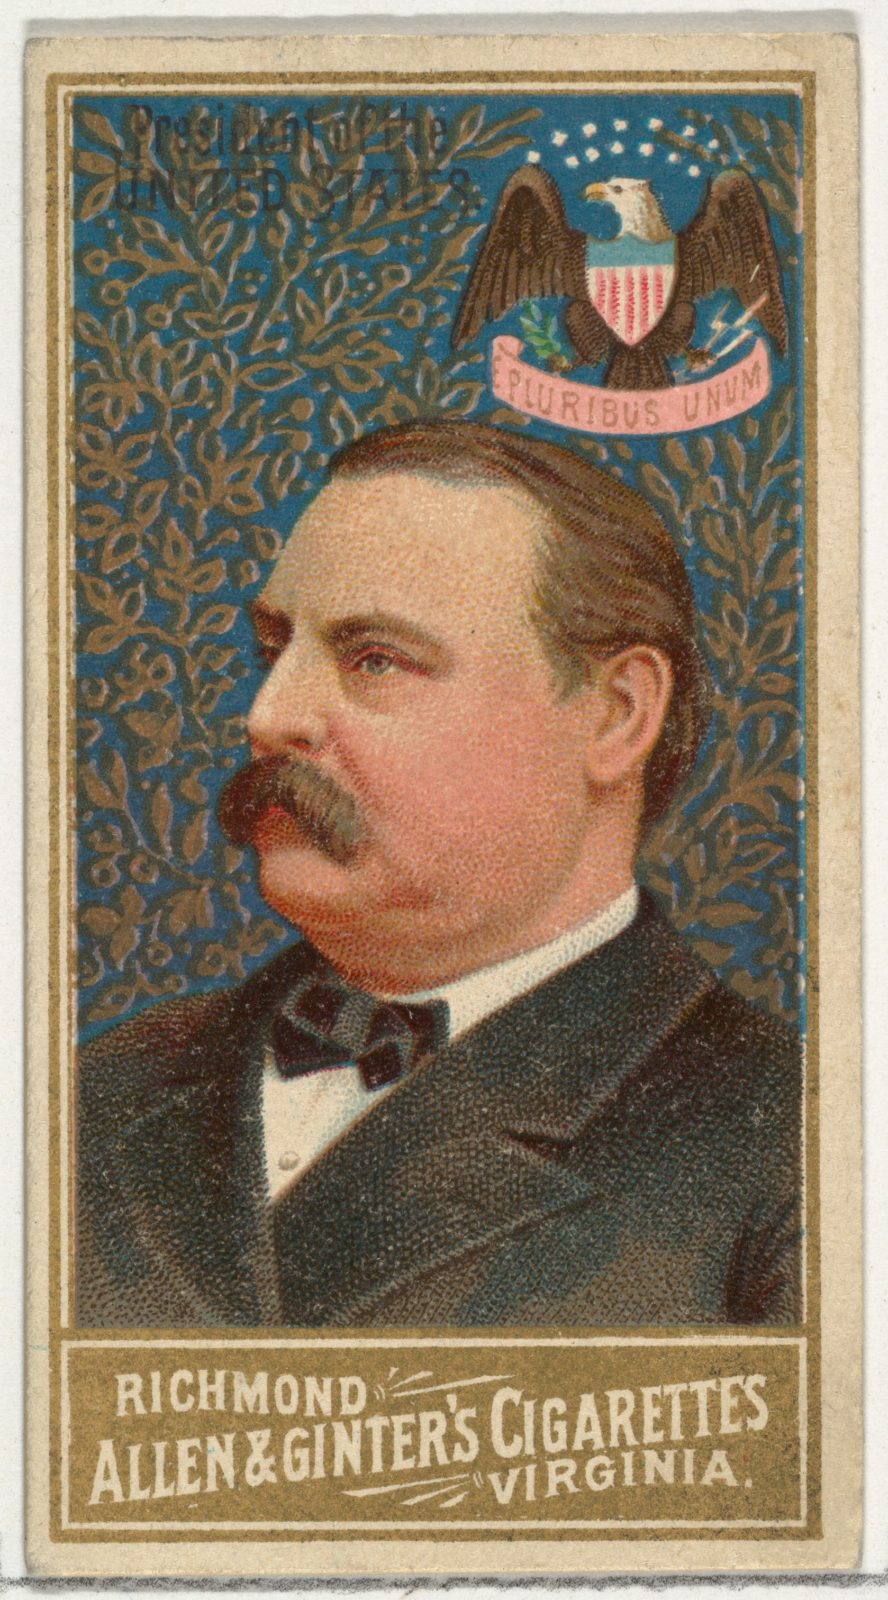 President of the United States, from World's Sovereigns series (N34) for Allen & Ginter Cigarettes